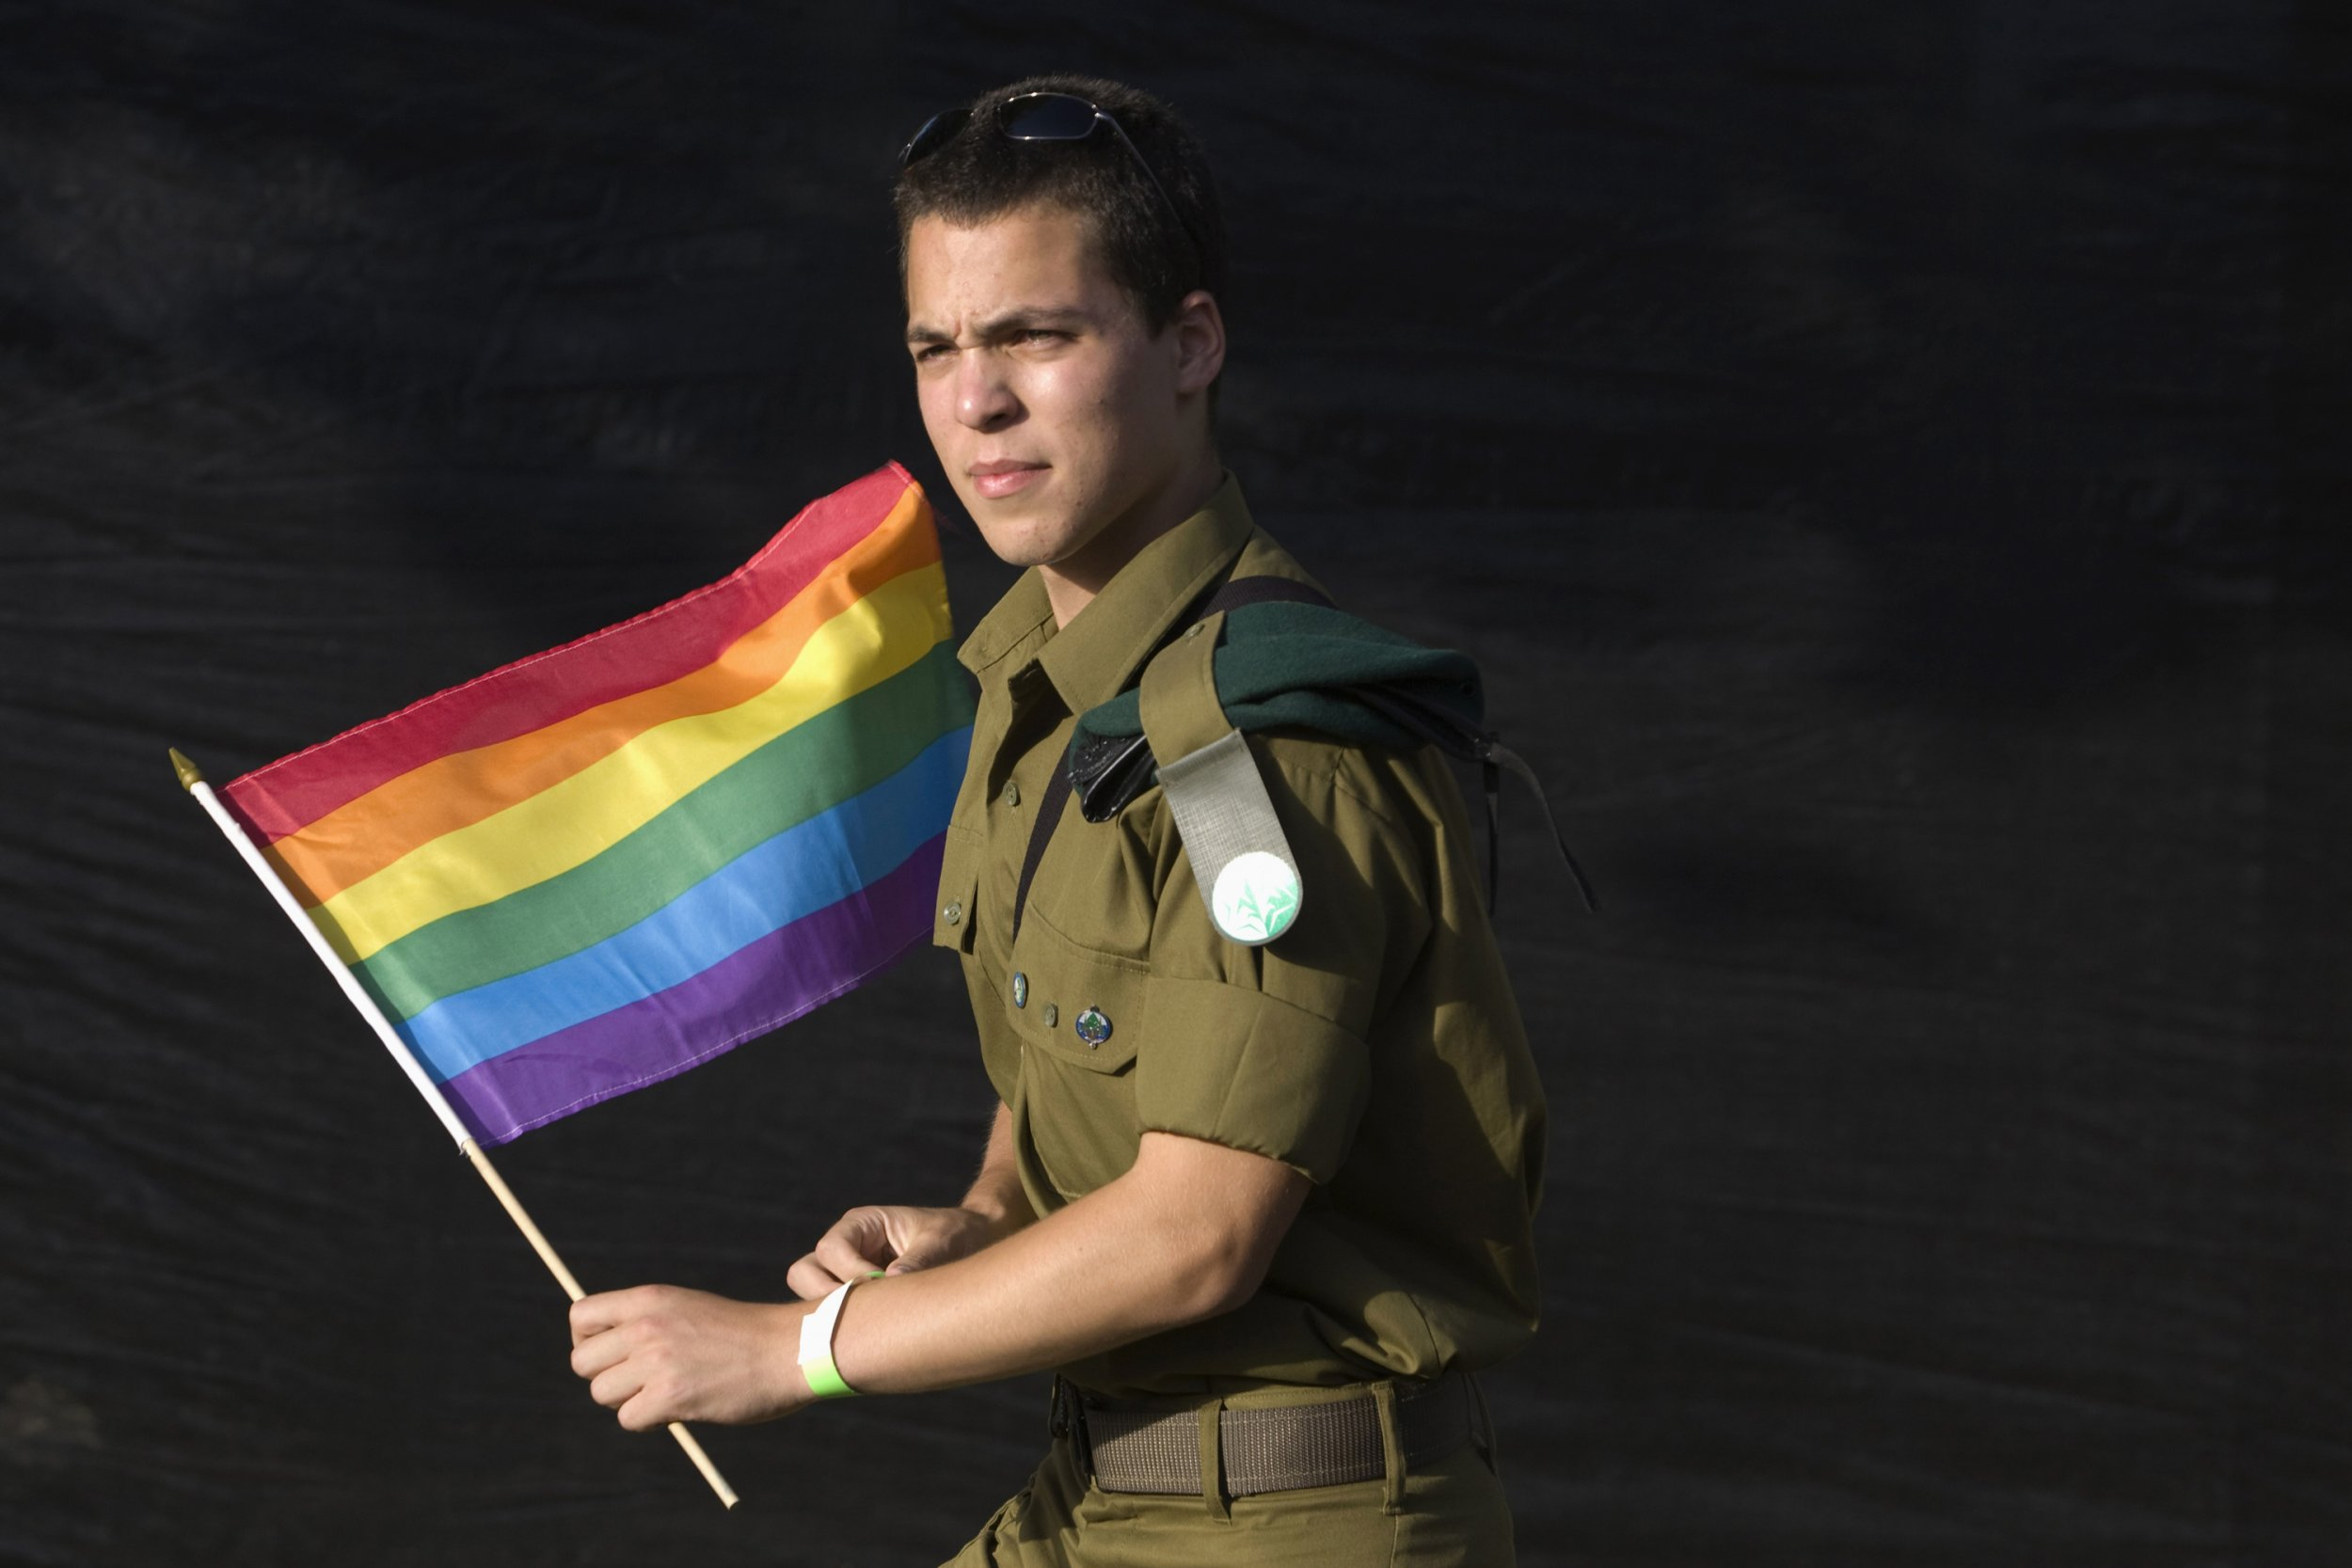 Israeli soldier takes part in the gay pride parade